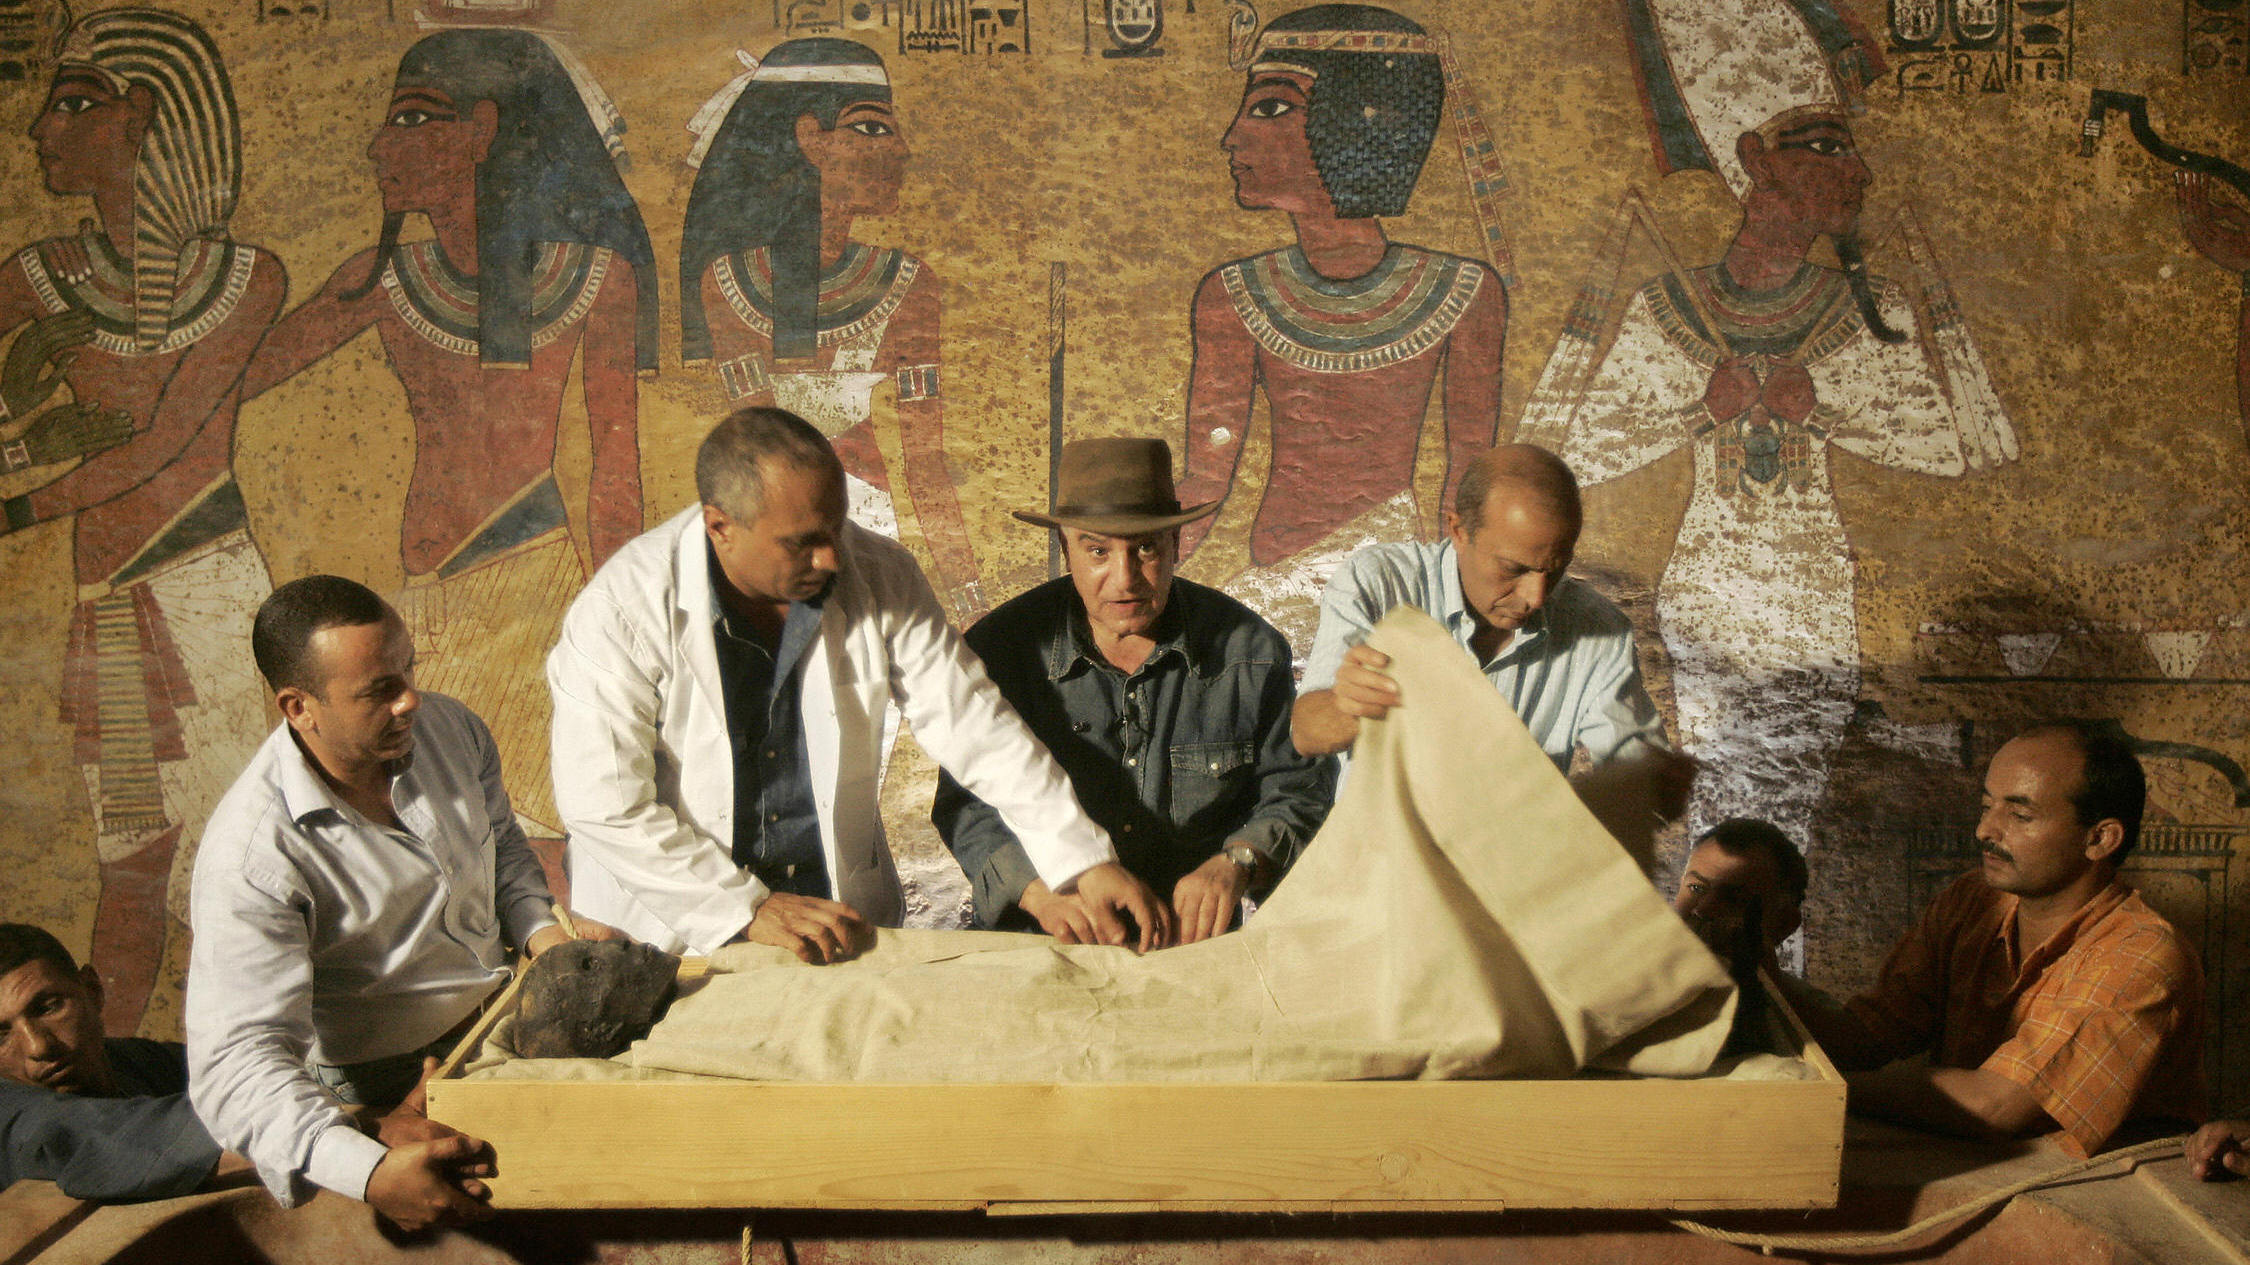 High Chance That 2 Rooms Are Hidden Behind King Tut's Tomb, Egypt Says